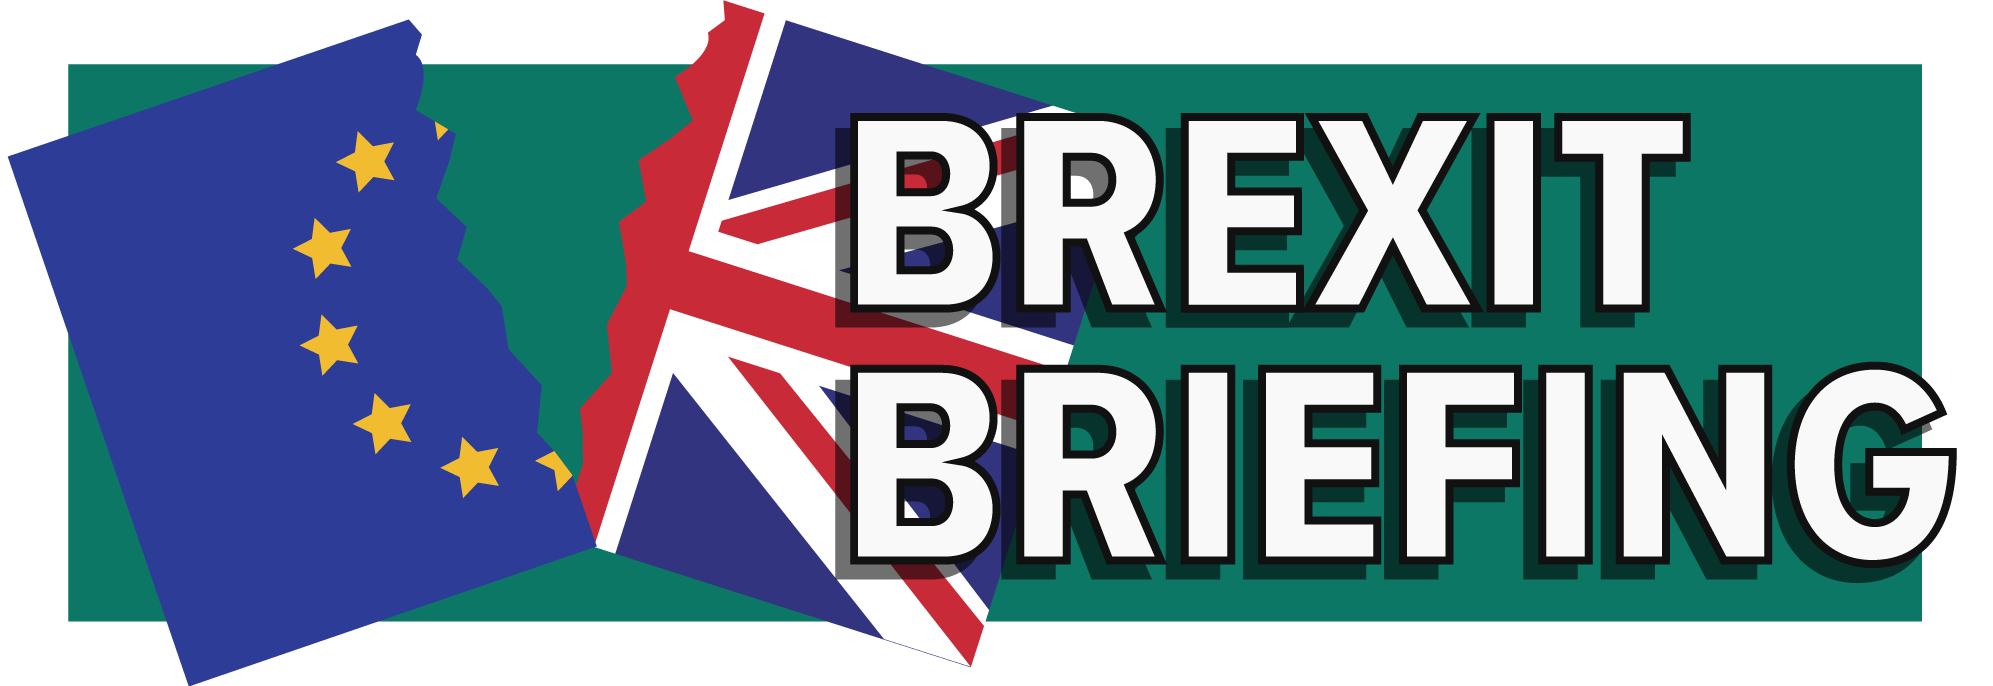 Brexit Briefing: Making Plans With Nigel